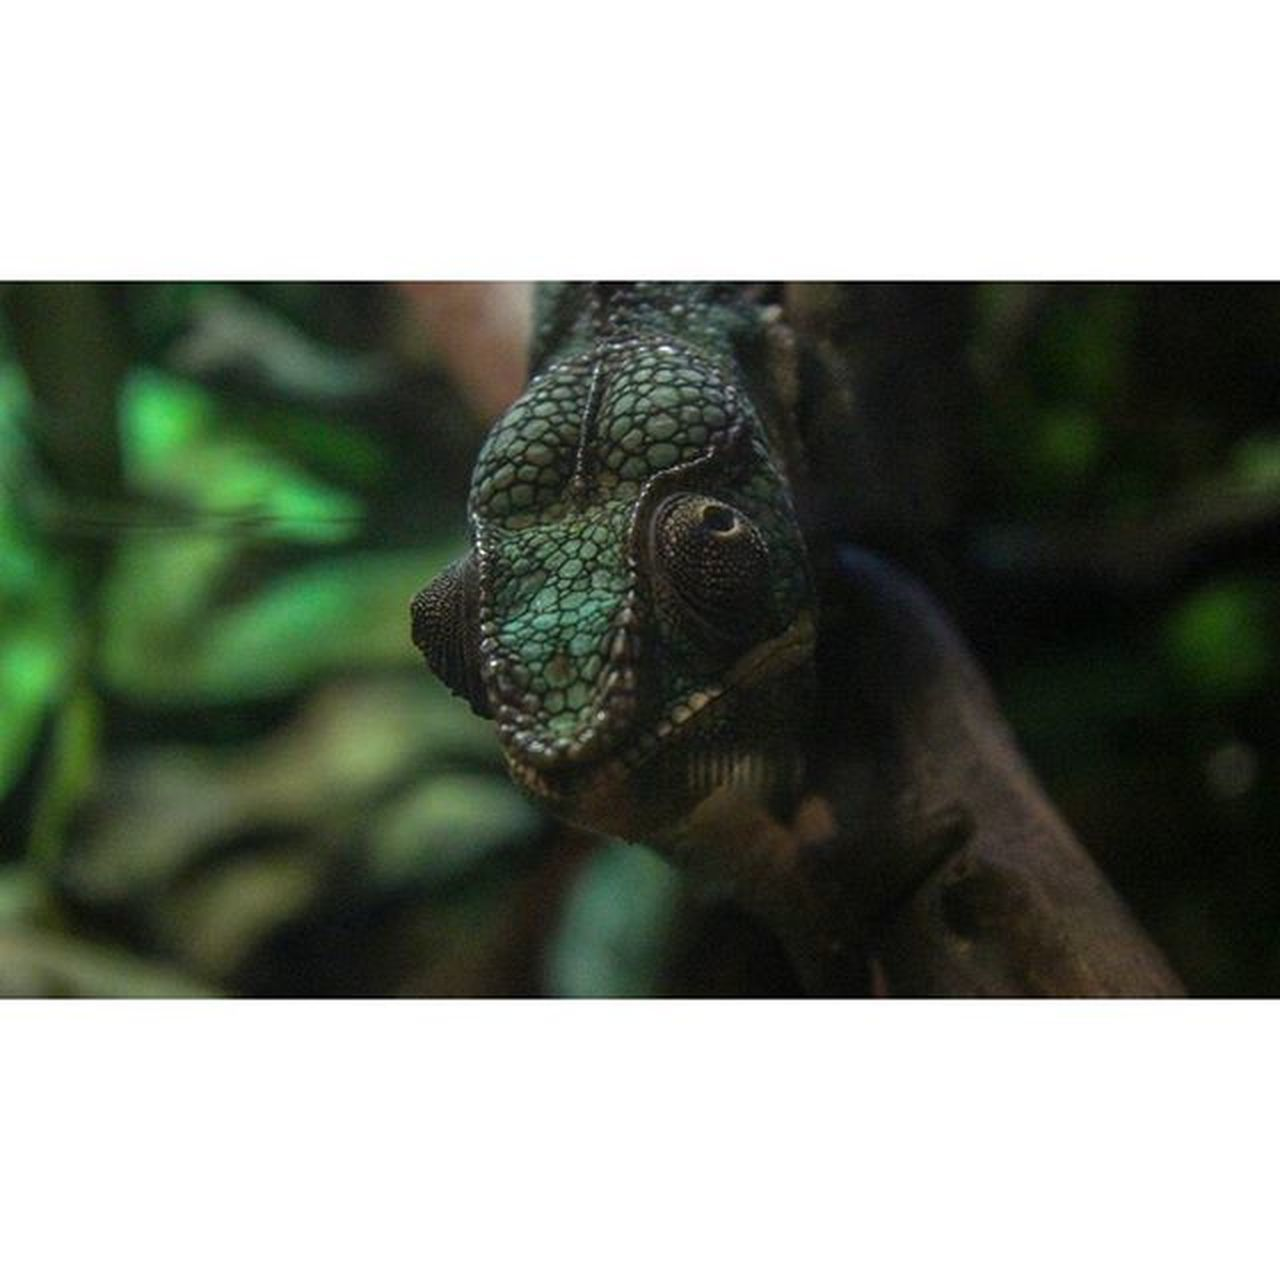 Chameleon that was at @blueplanetaquarium Chameleon Reptile Animal Chilling Theyneedtocleantheglass Blueplanetaquarium